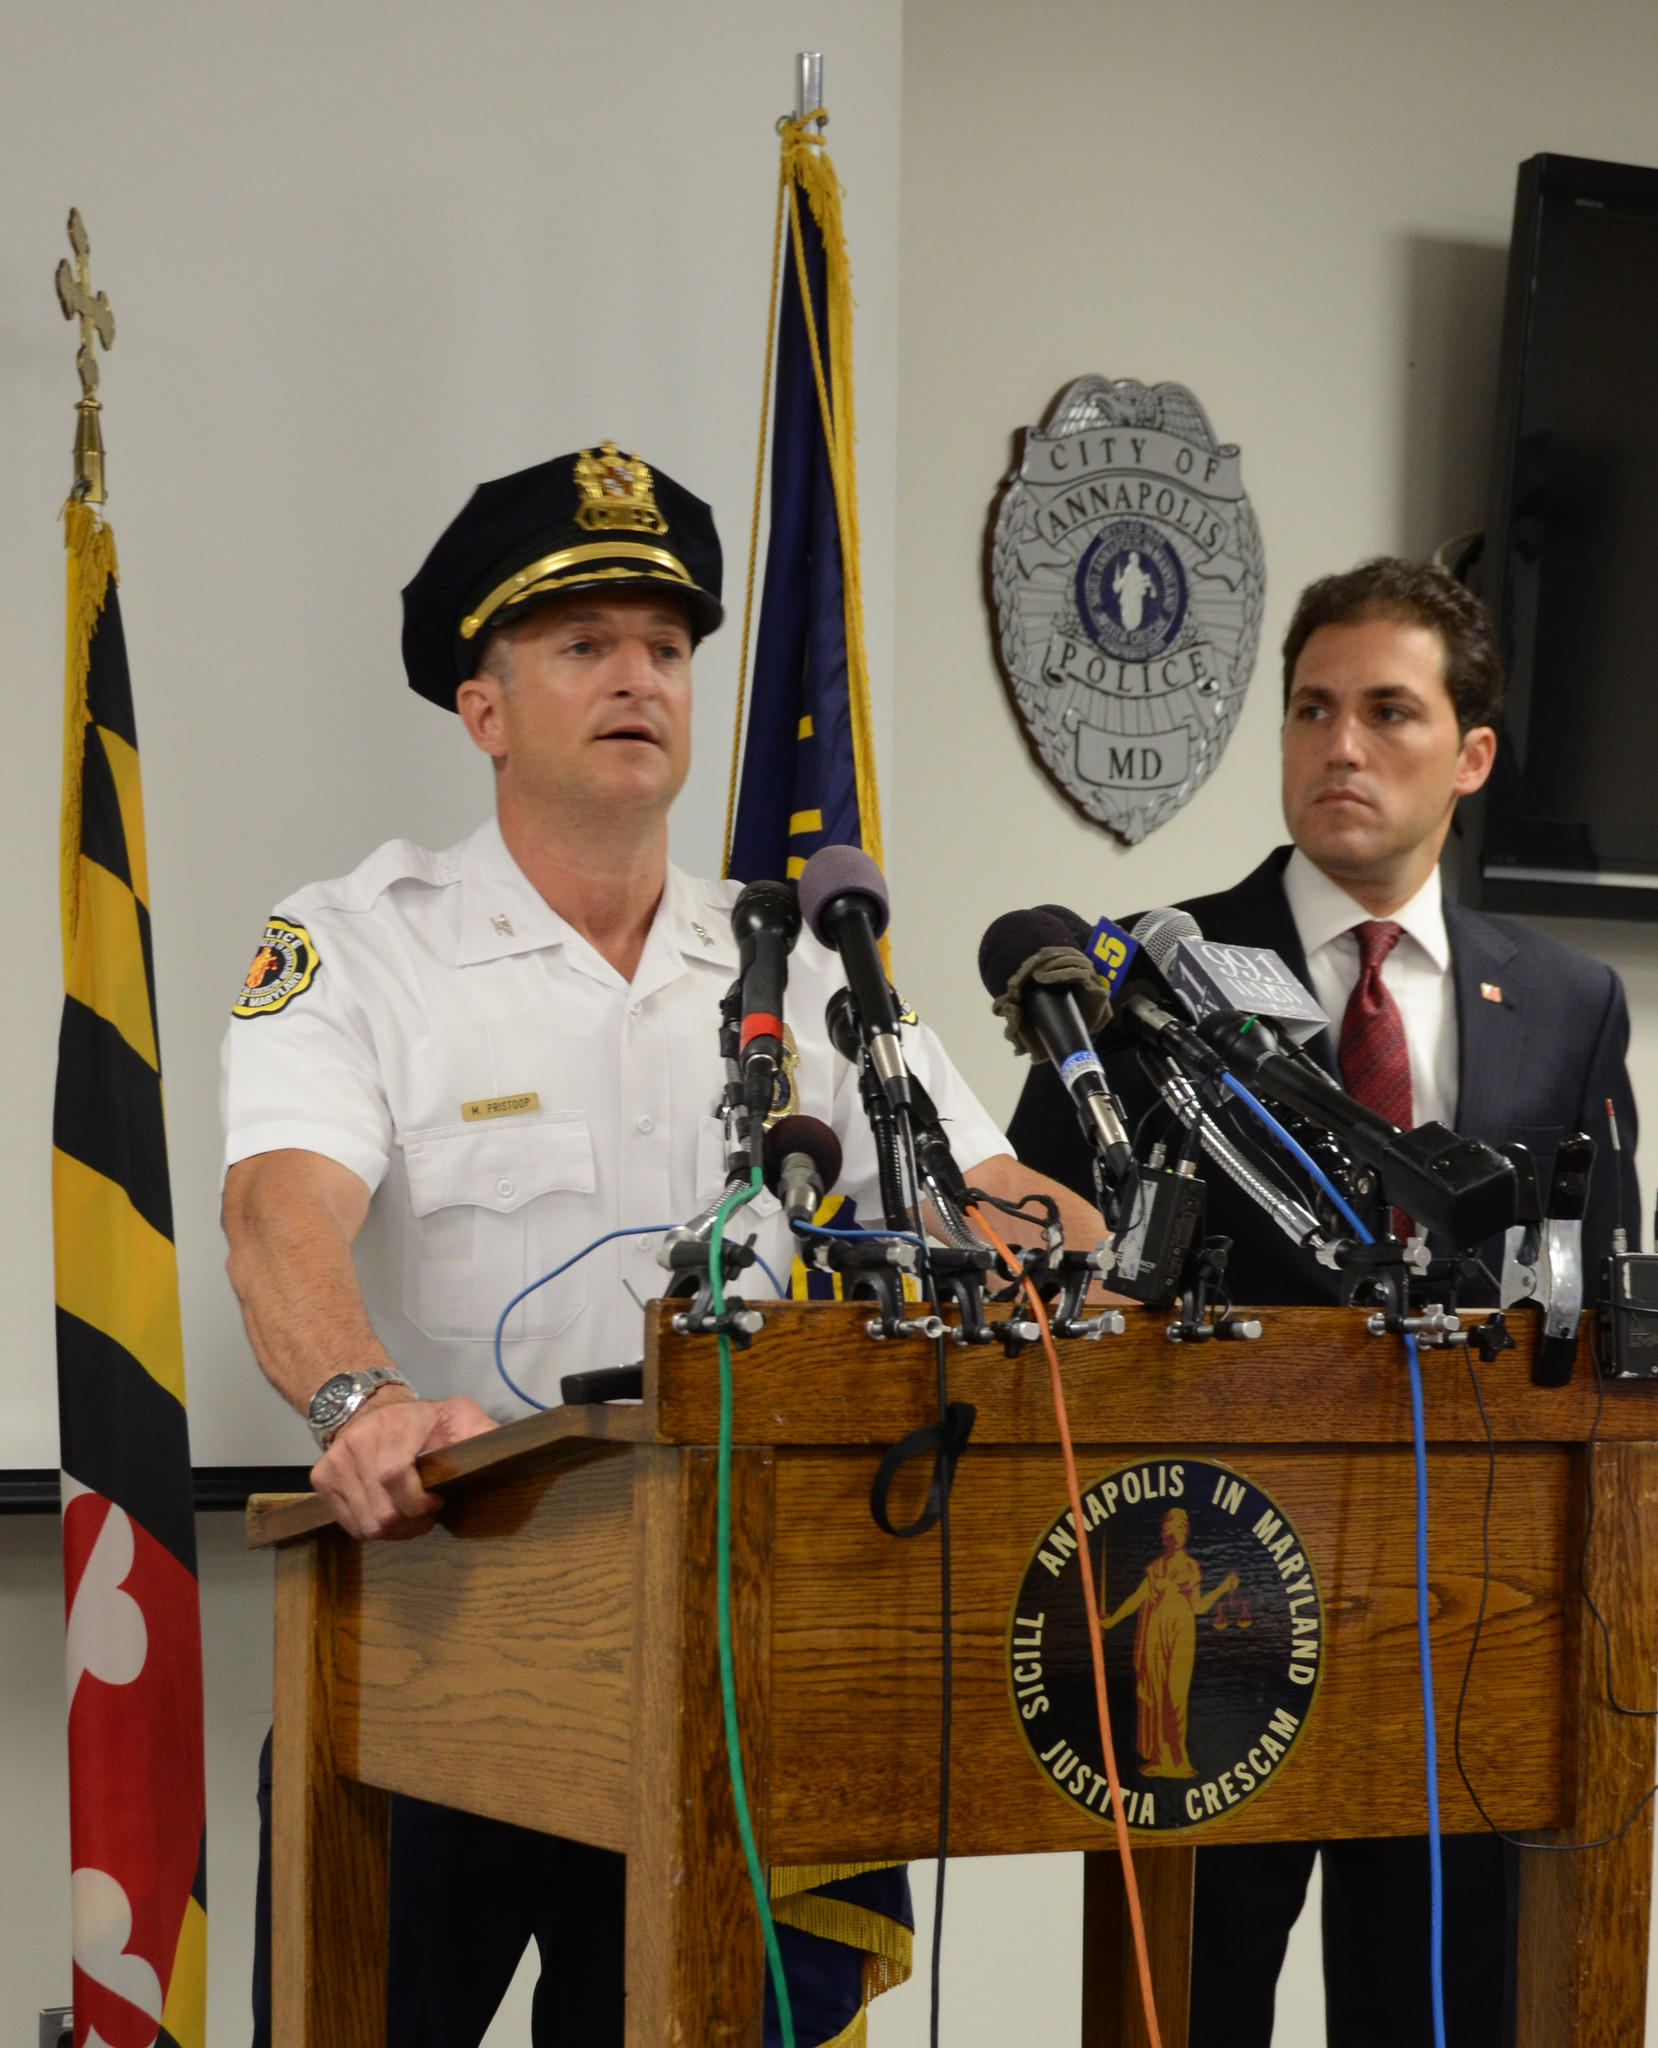 Annapolis Police Chief Michael Pristoop discusses details of a police-involved shooting during a press conference at the department's headquarters Tuesday morning.